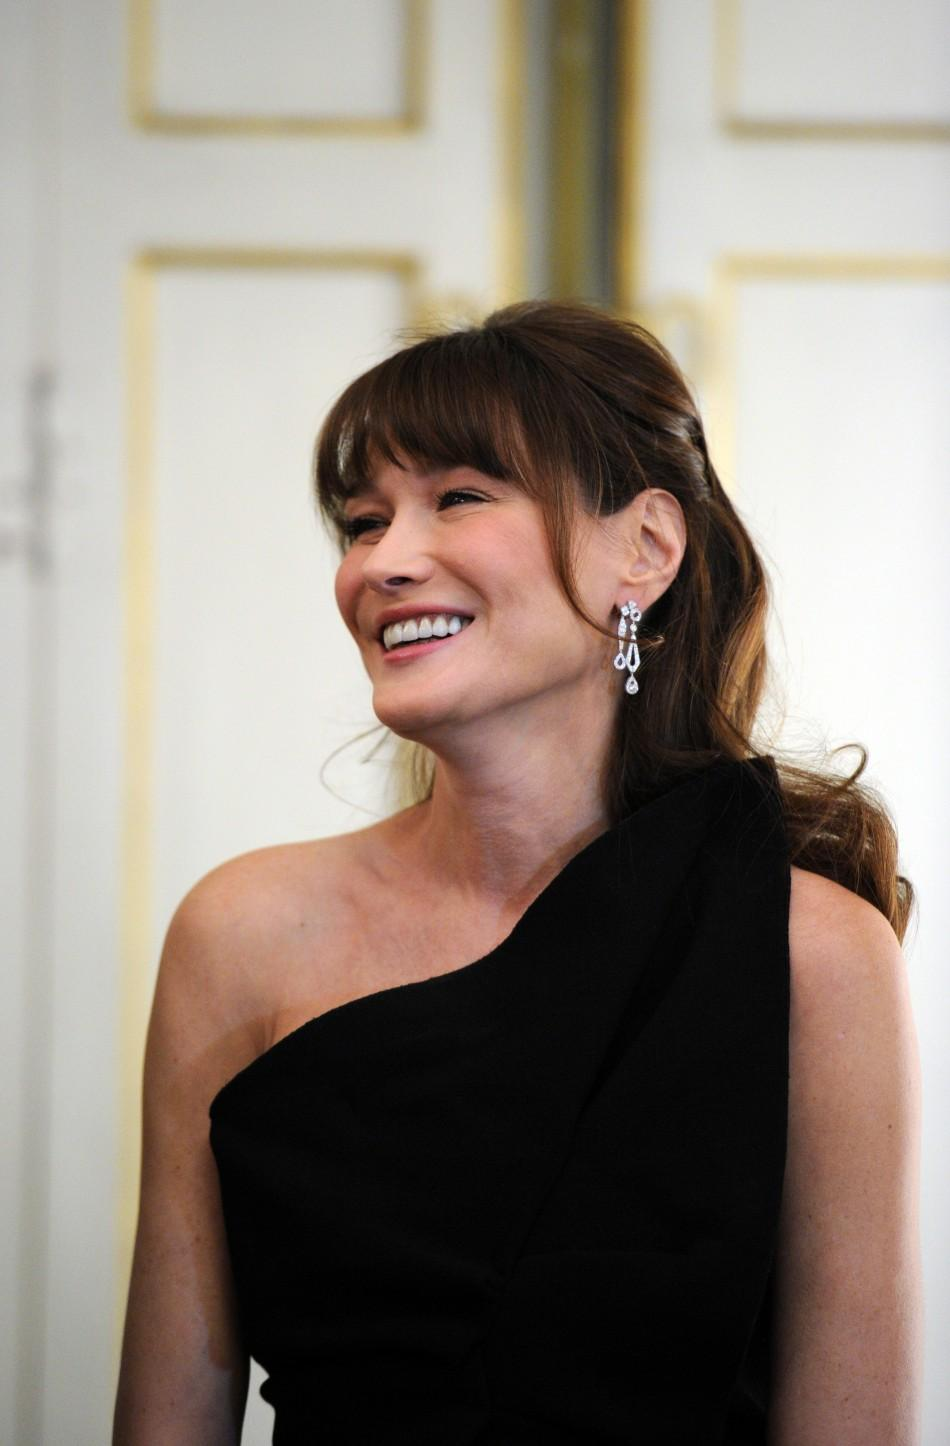 French President Nicolas Sarkozy's wife Carla Bruni-Sarkozy welcomes guests prior to an official dinner at the Elysee Palace in Paris